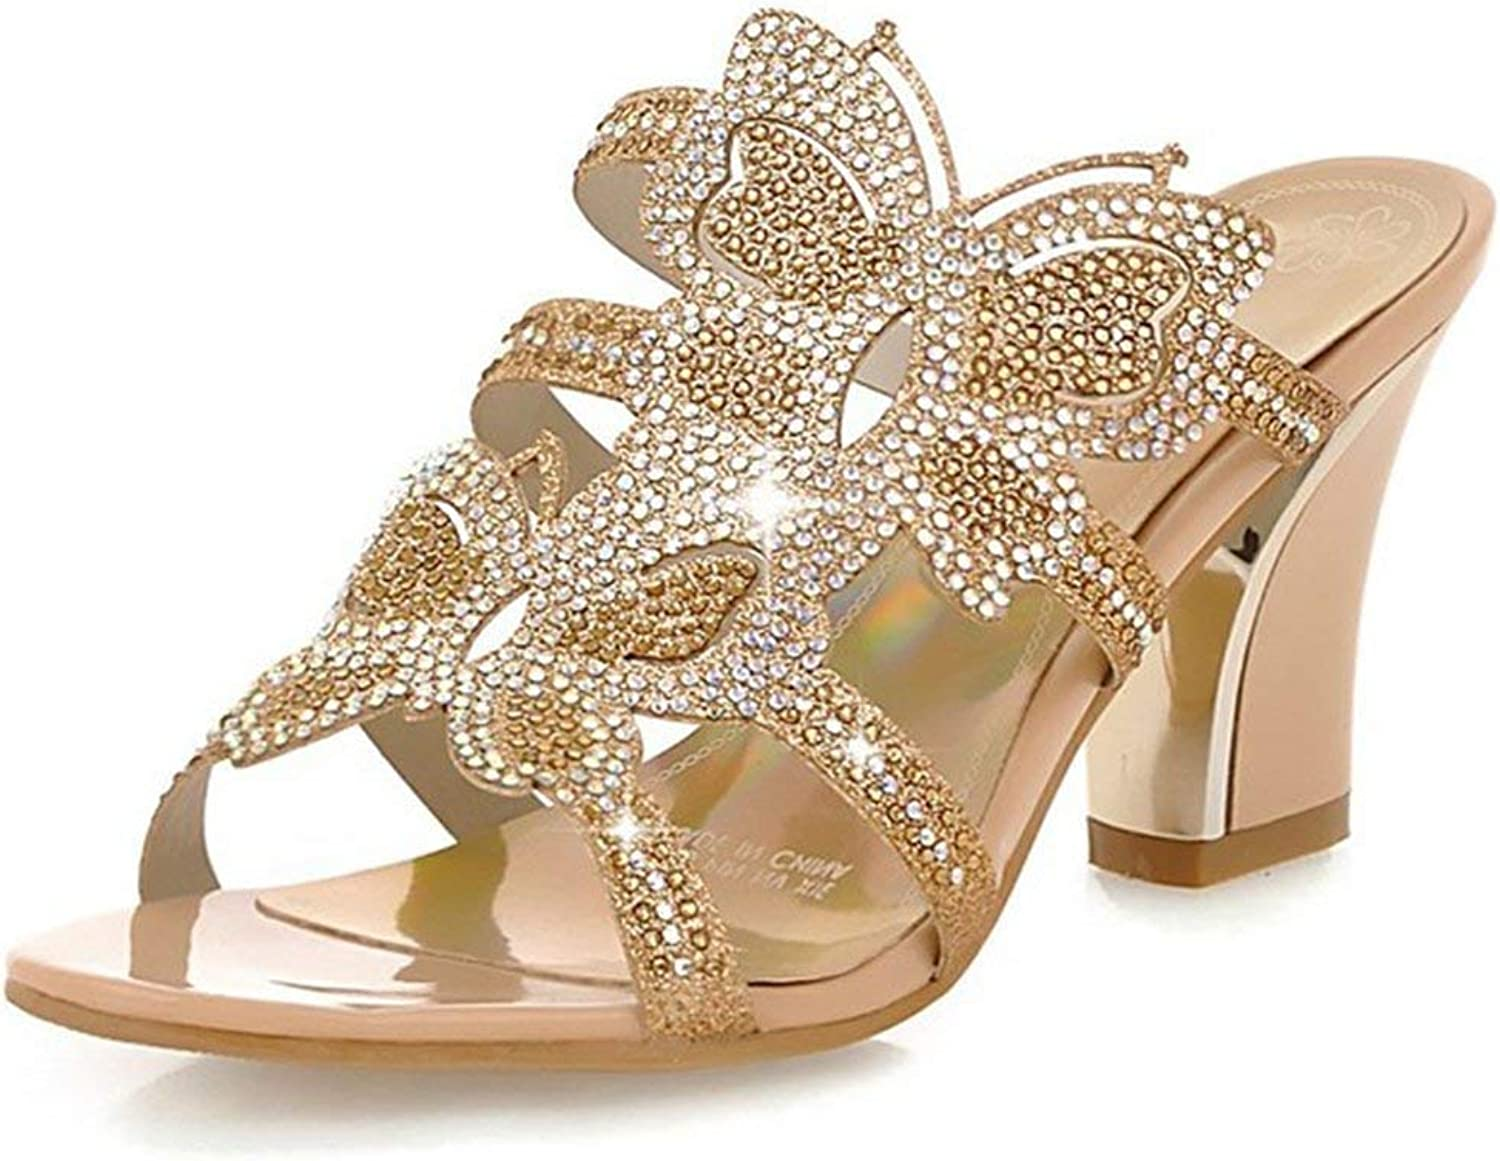 Gcanwea Women's Sexy Rhinestone Butterfly Open Toe Cut Out Mules Chunky High Heel Slide Sandals Sweet Skinny Soft Antiskit Durable Girl Fashion Beige 4 M US Sandals